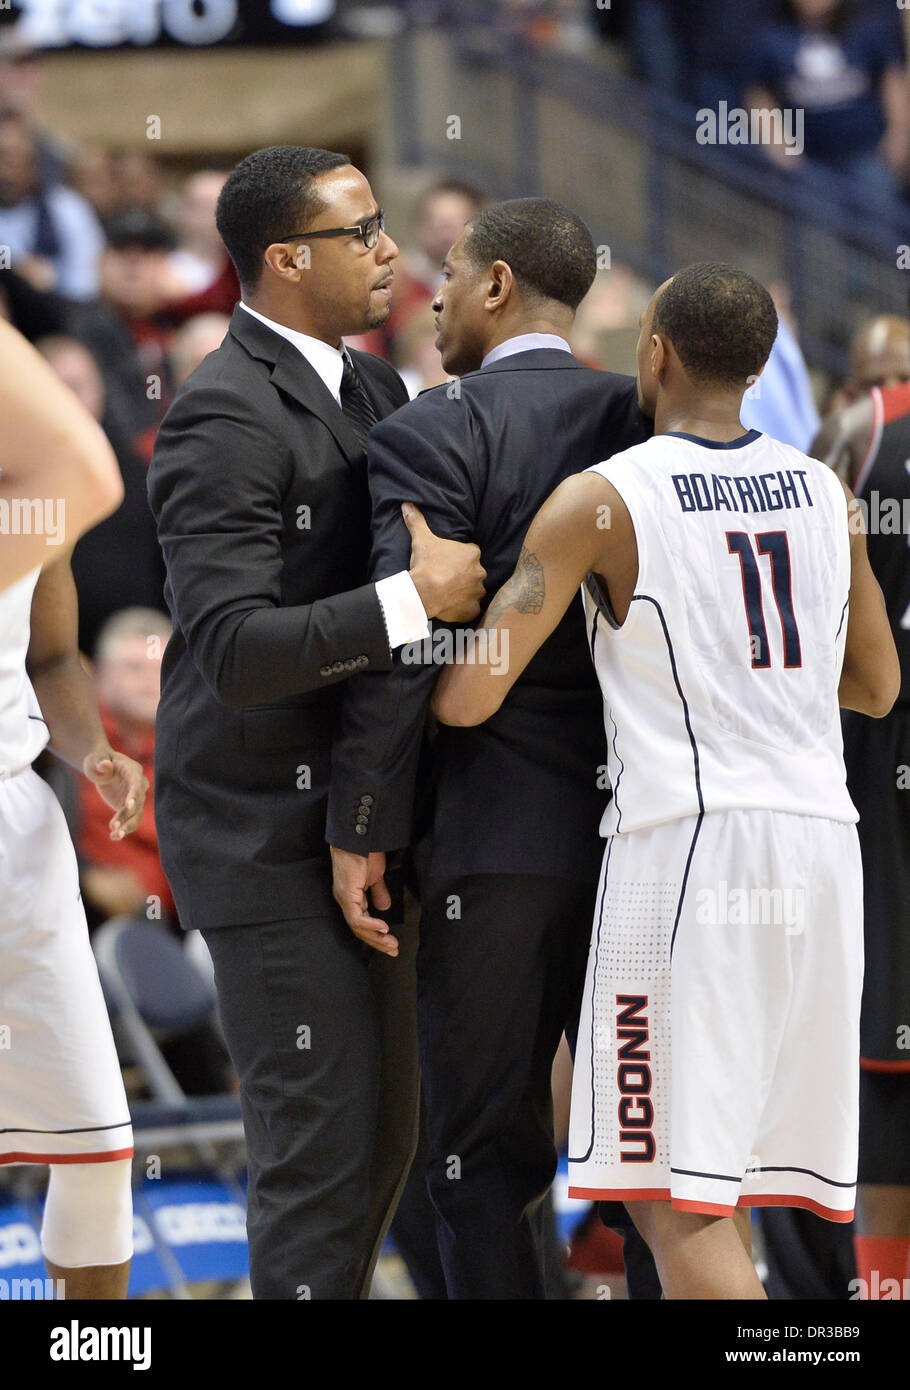 Storrs, CT, USA. 18th Jan, 2014. Saturday January 18, 2014: Connecticut Huskies Head coach Kevin Ollie is restrained Stock Photo